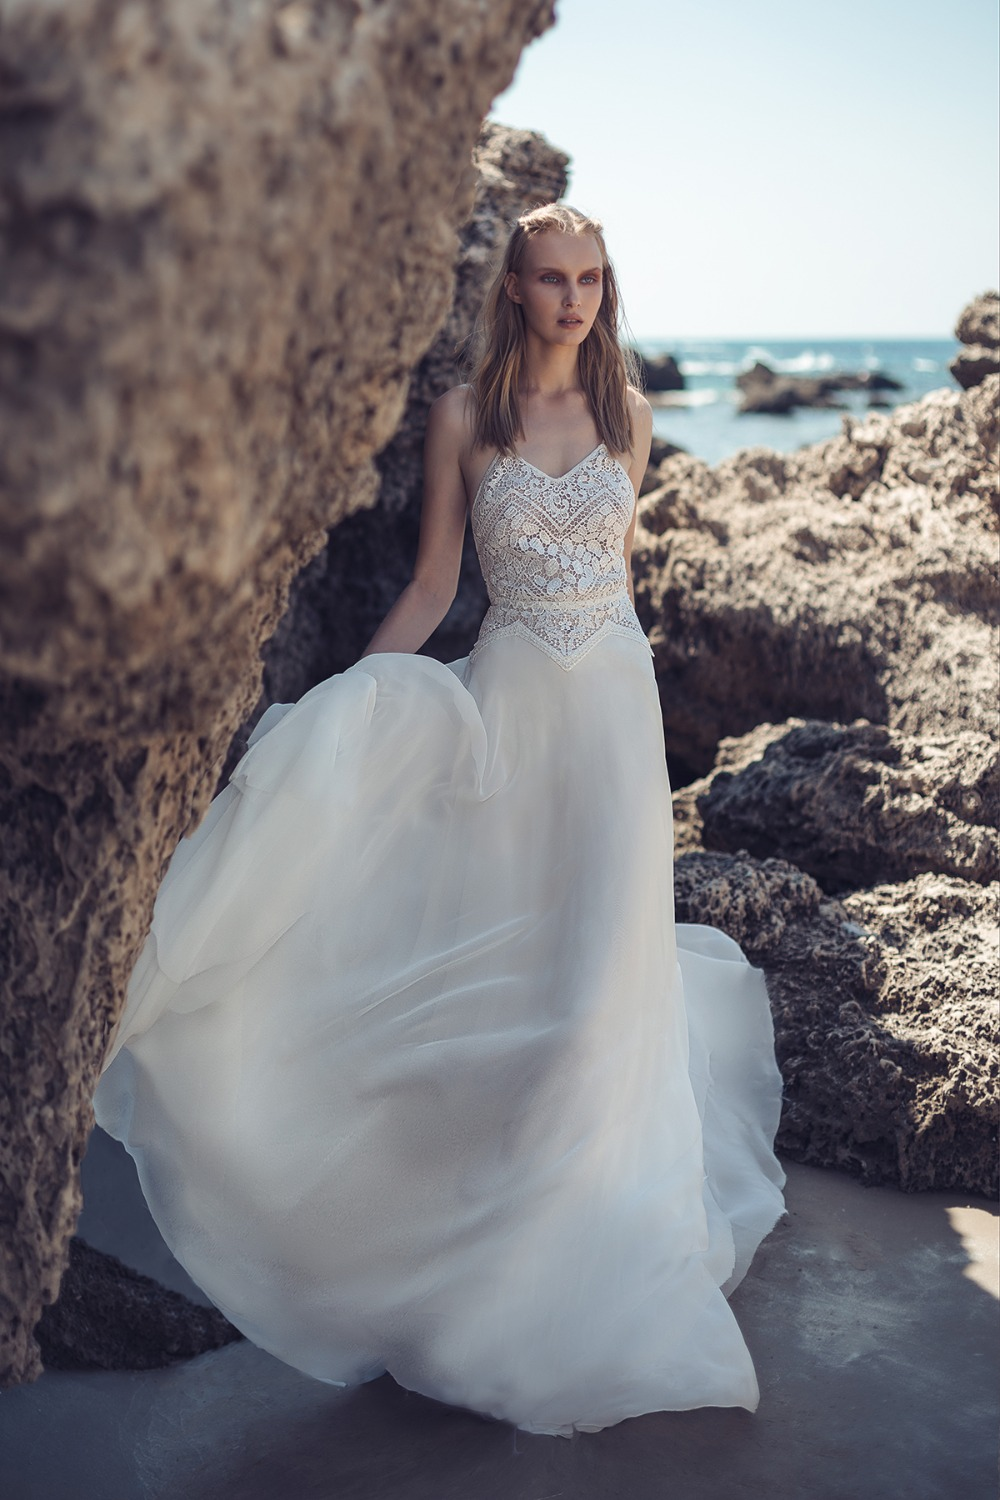 tulle skirt wedding dress with elegant top by Lilium